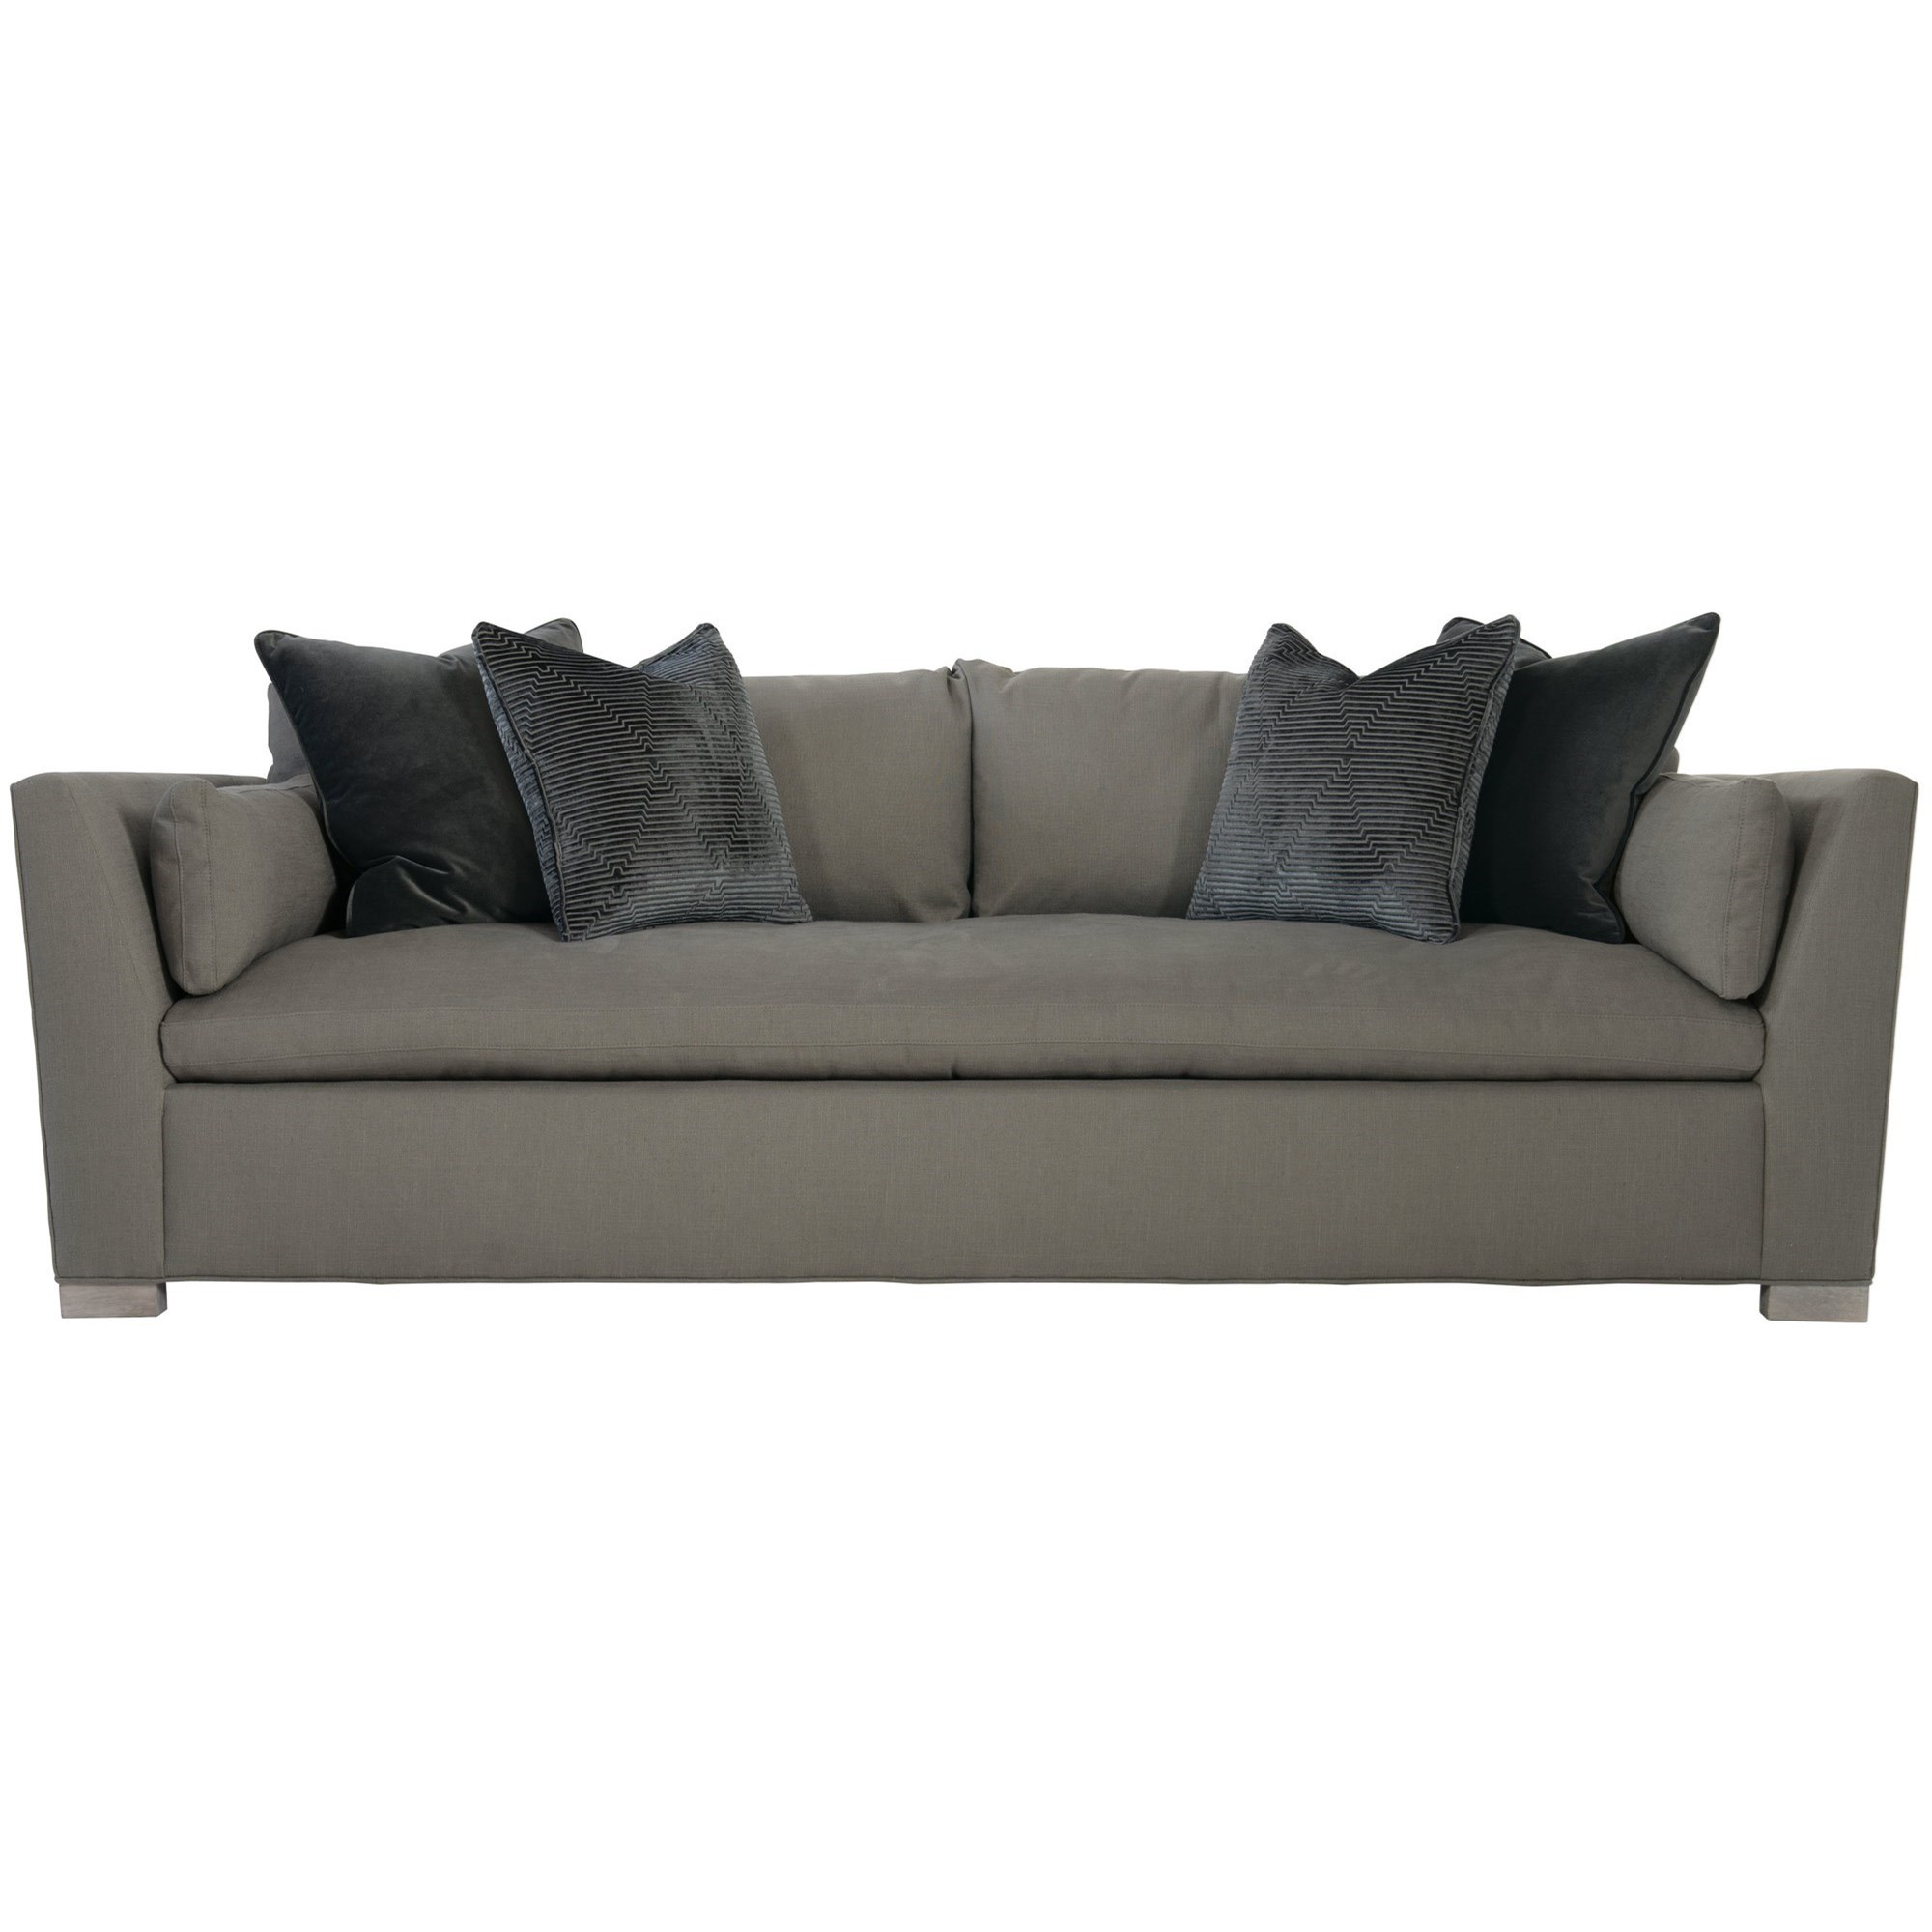 Brilliant Bernhardt Interiors Serenity N6128B Contemporary Sofa With Home Interior And Landscaping Ponolsignezvosmurscom